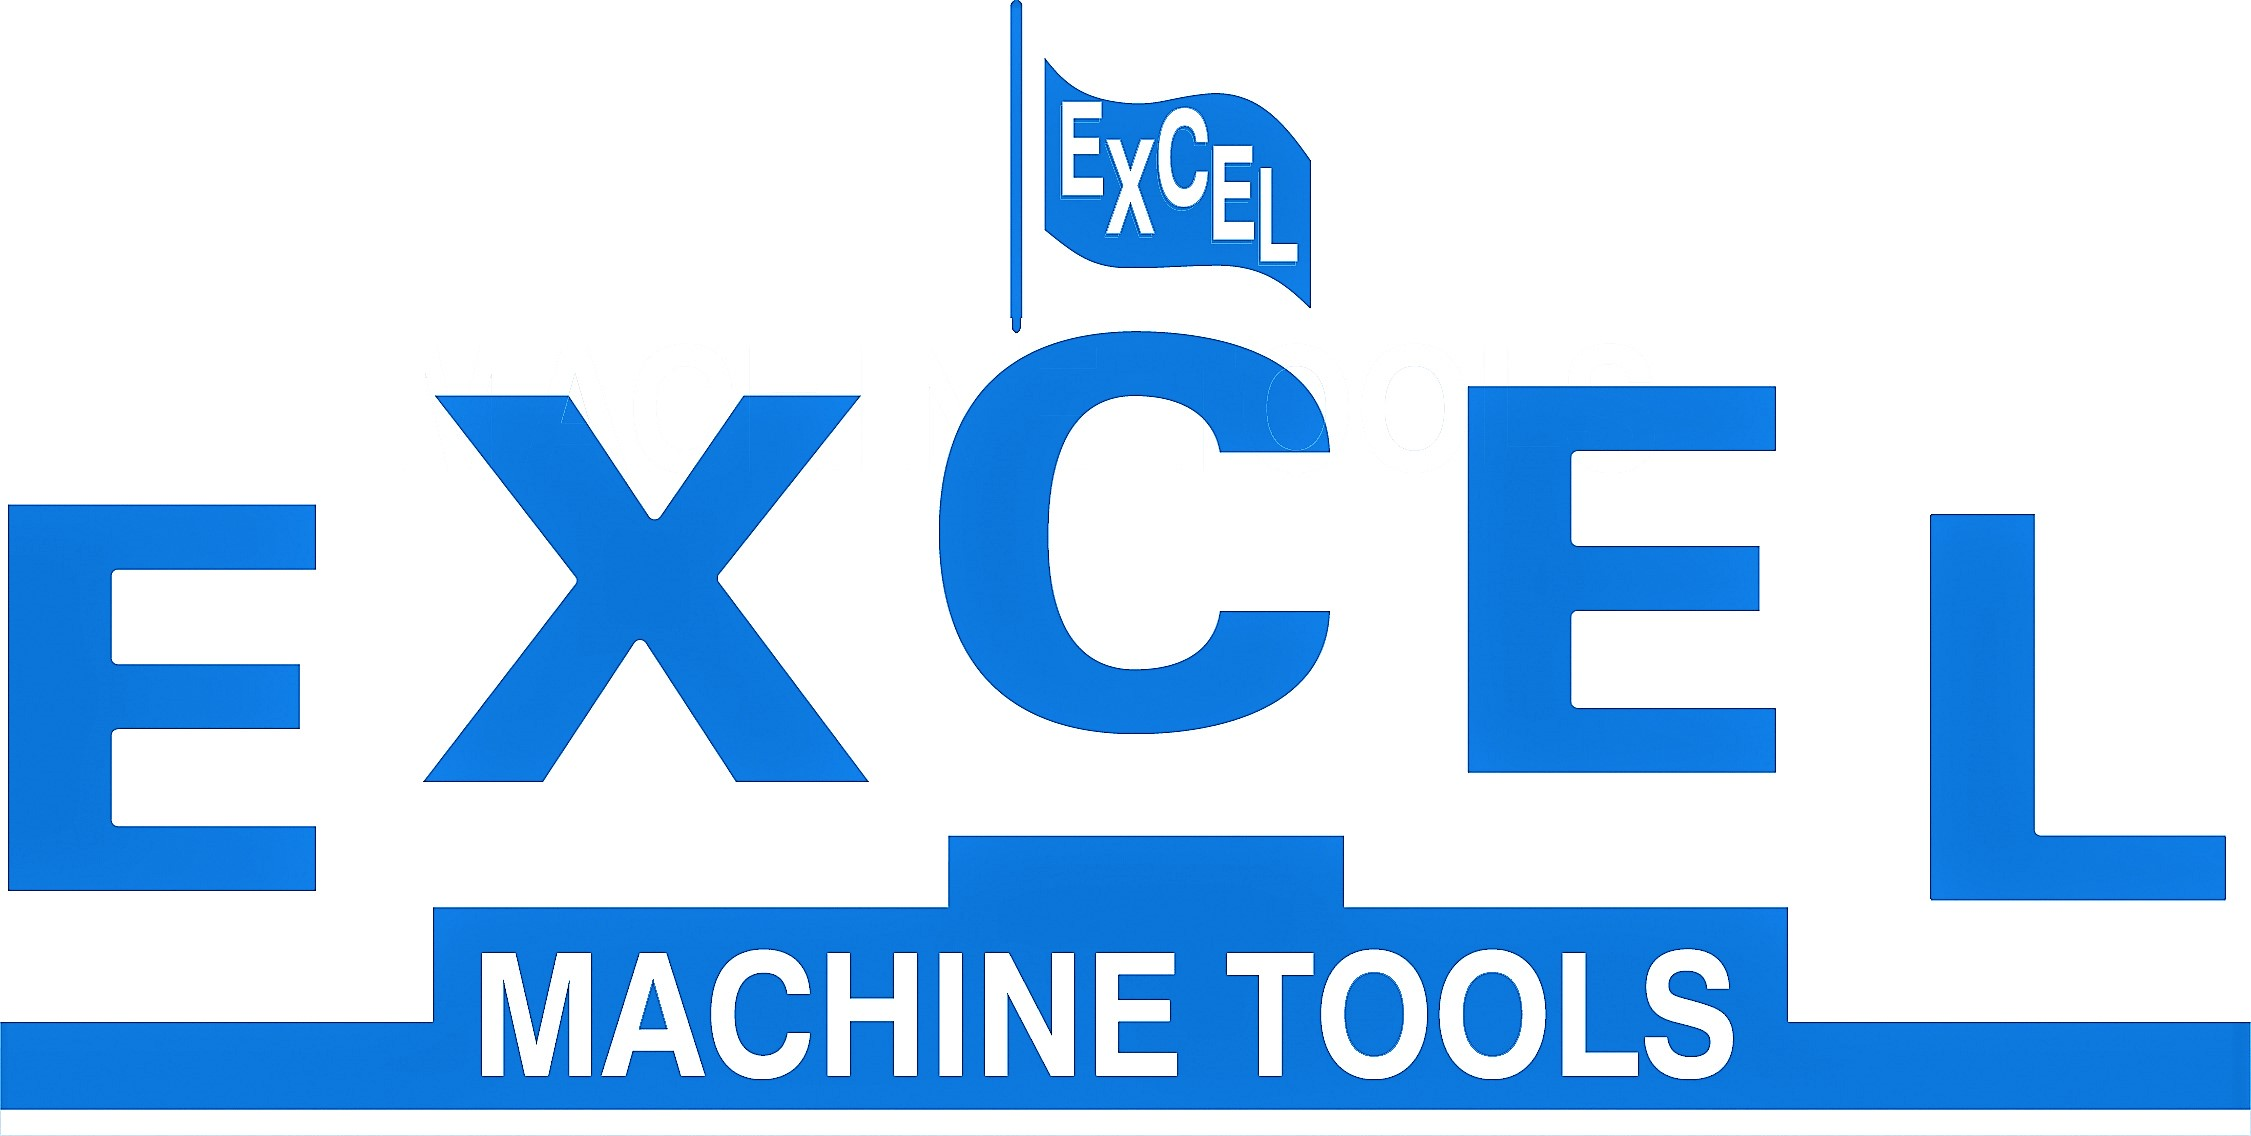 Excel Machine Tools